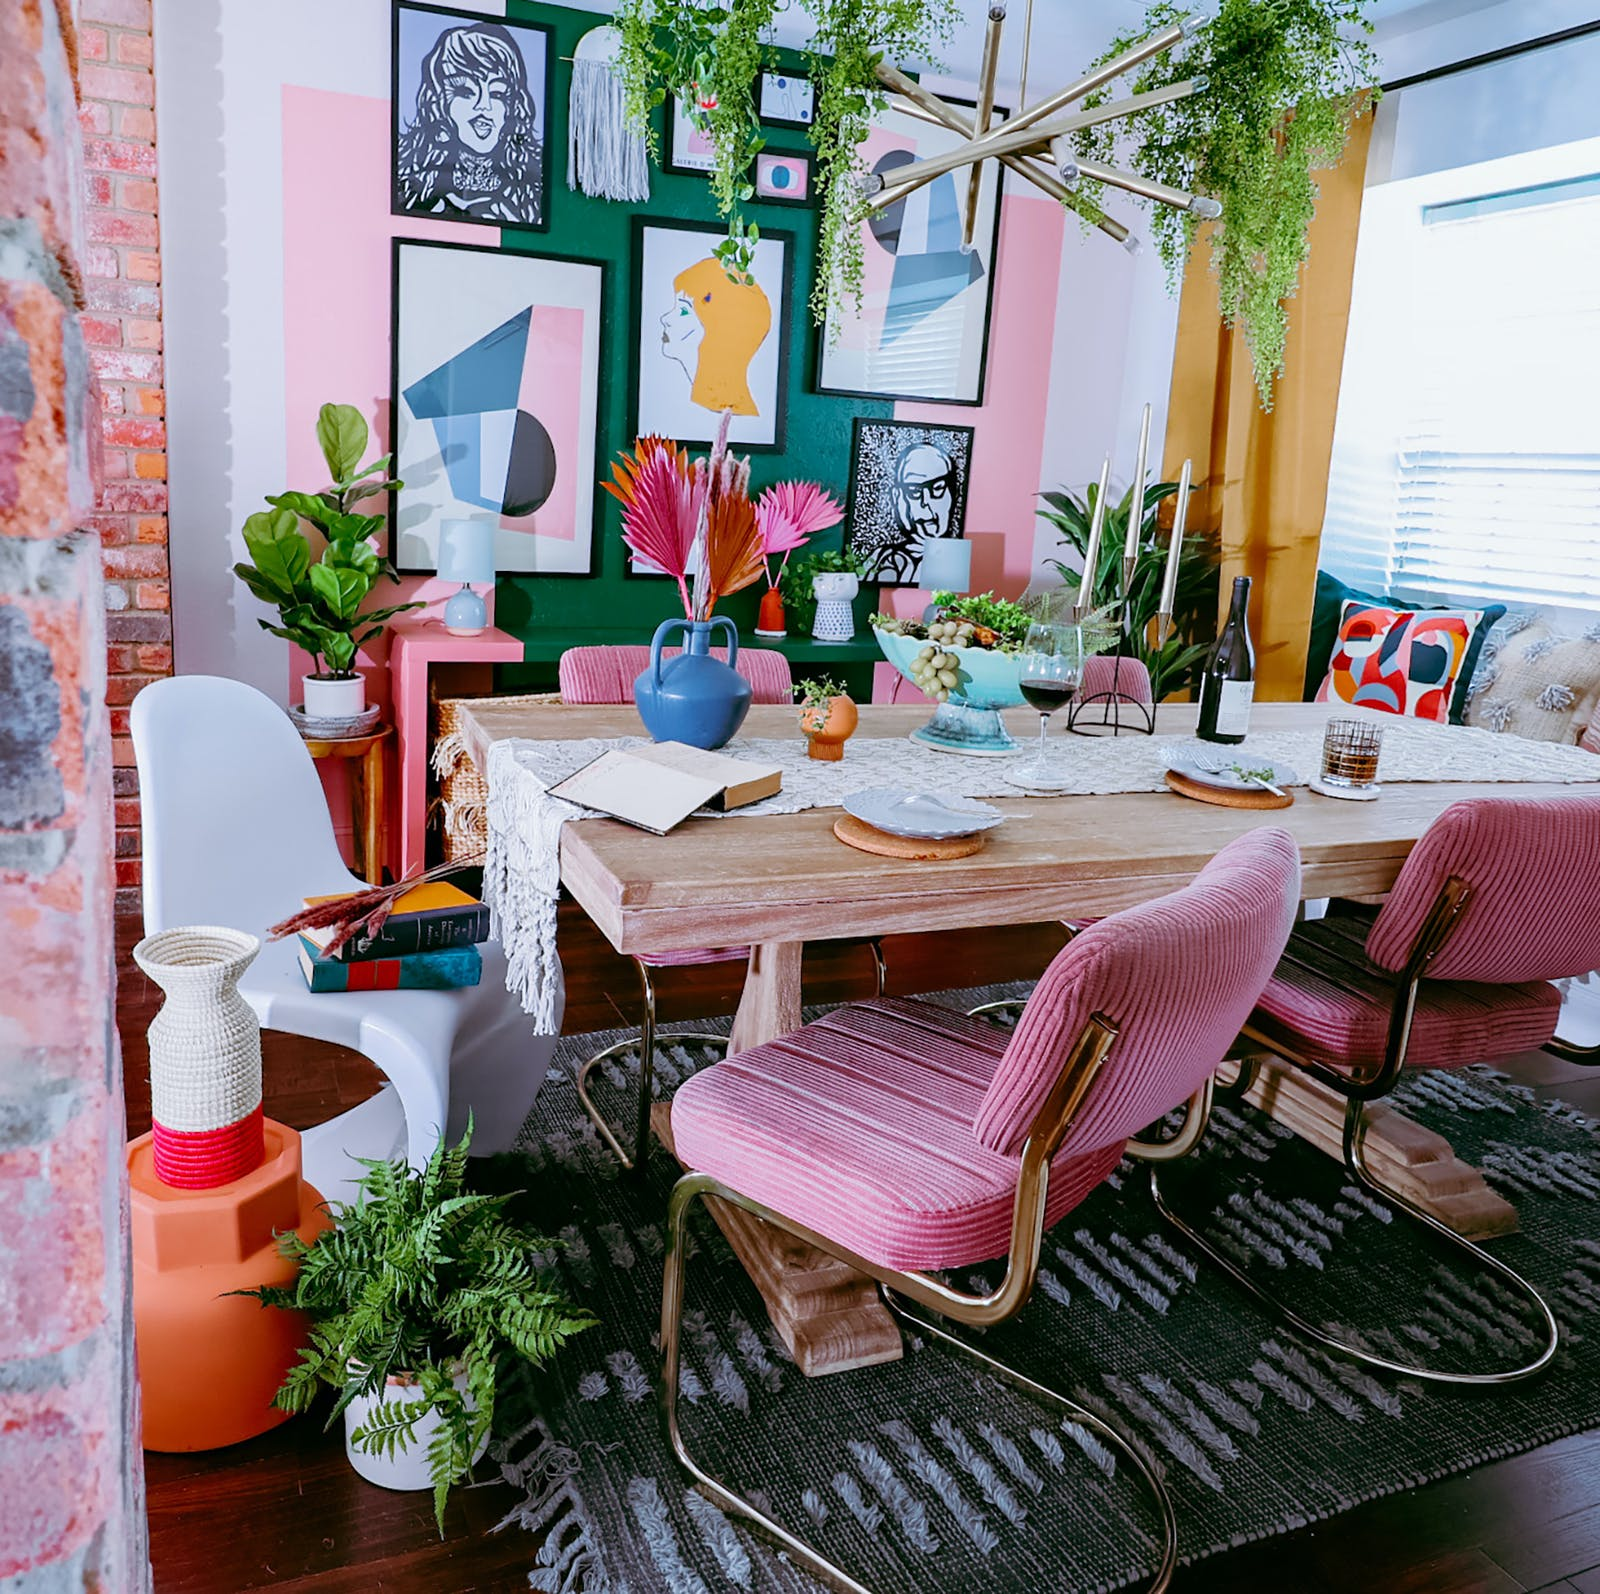 Image of dining table with pink chairs and a gallery wall